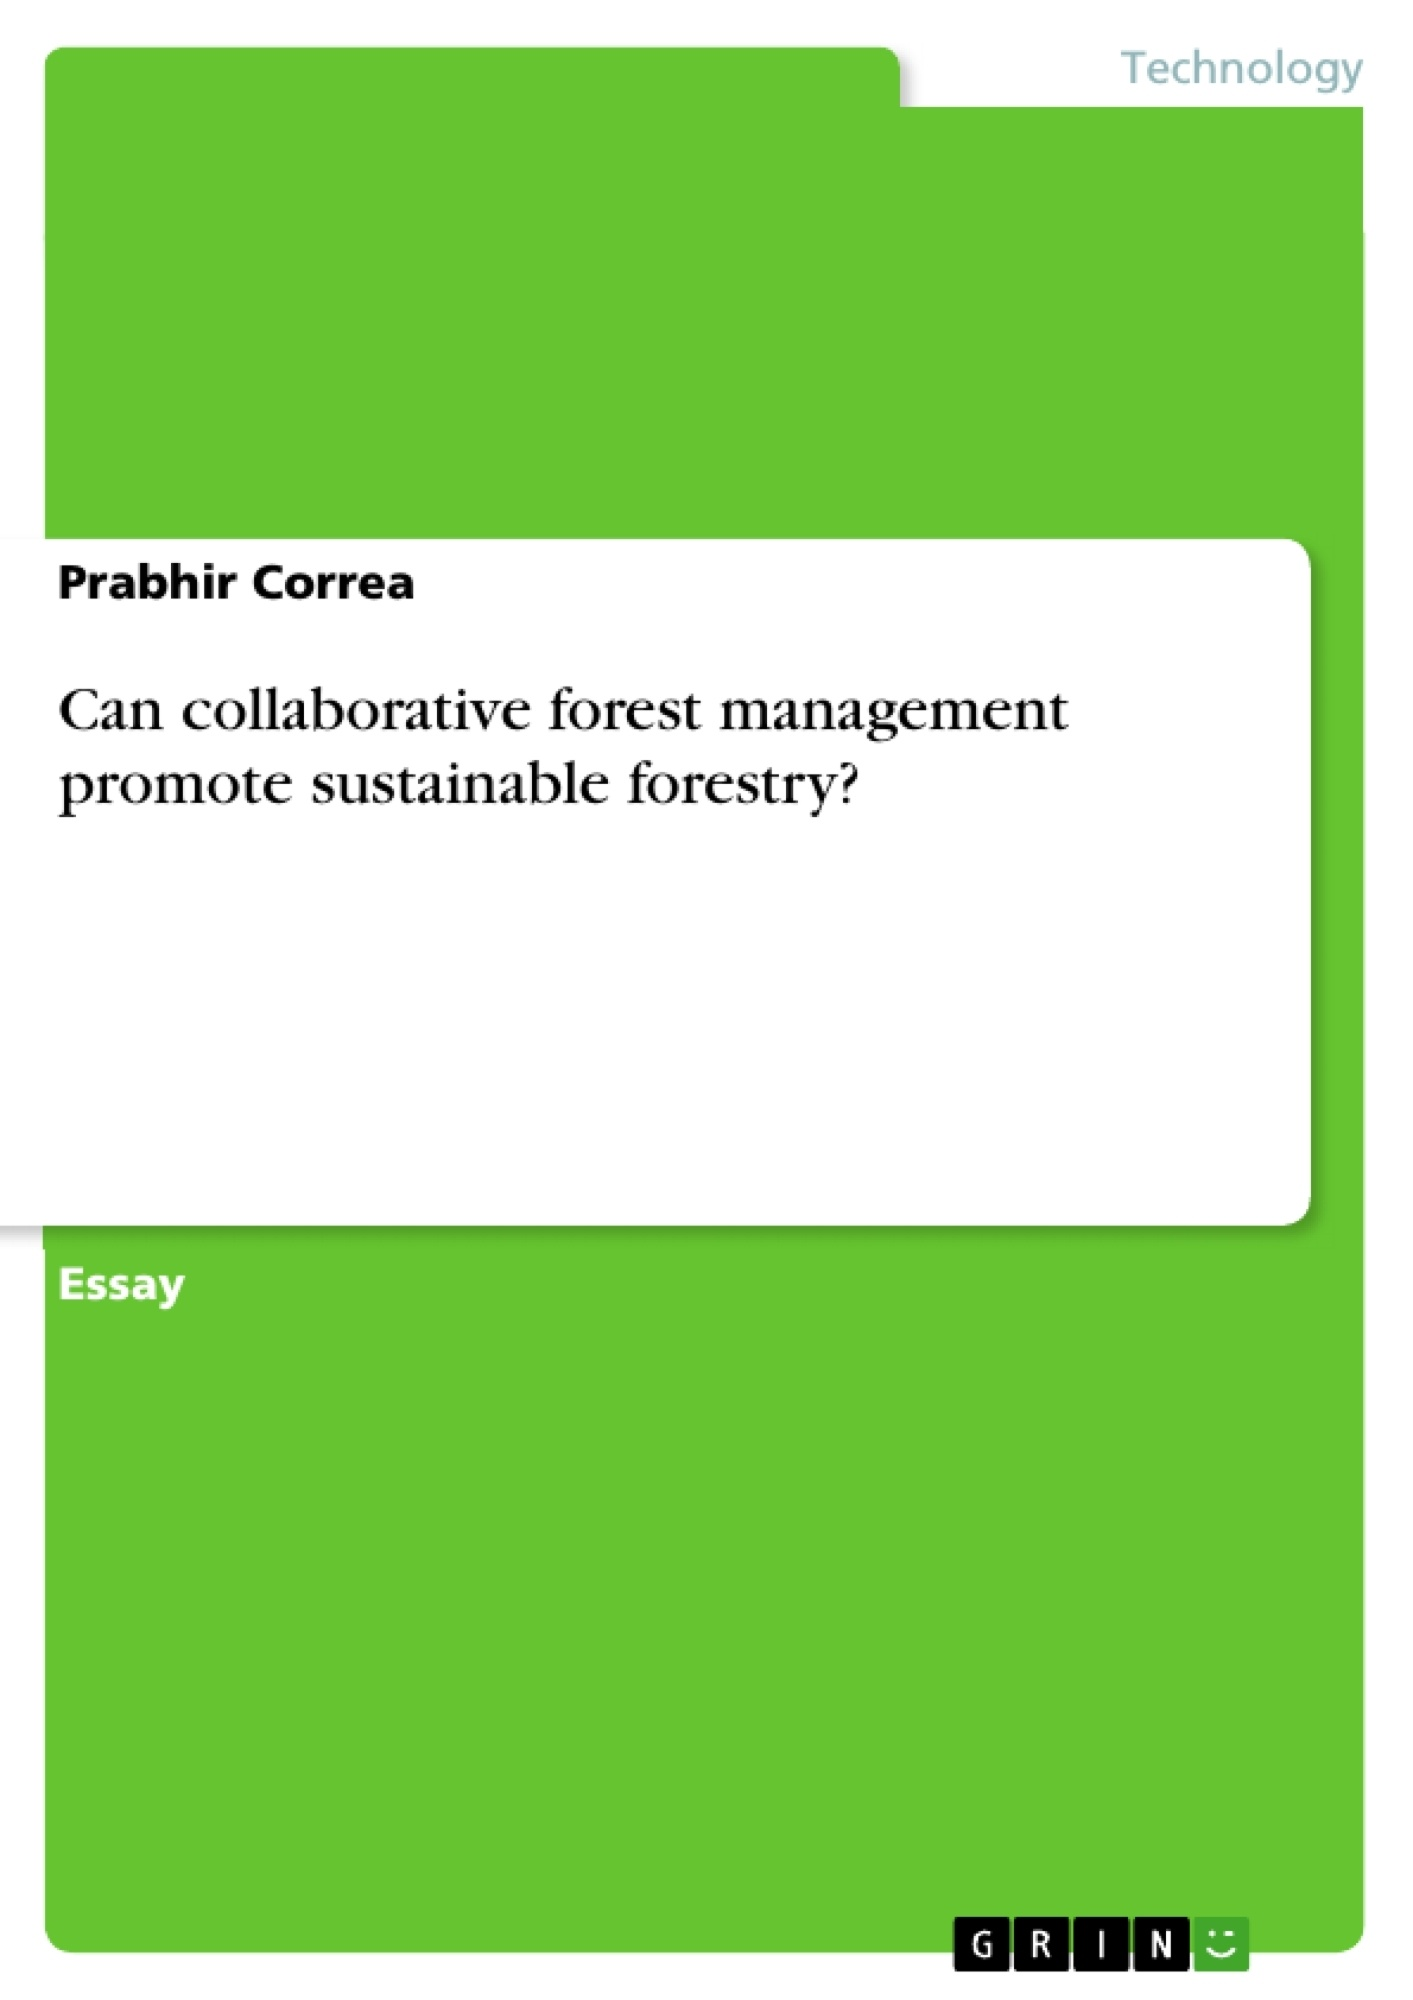 Title: Can collaborative forest management promote sustainable forestry?